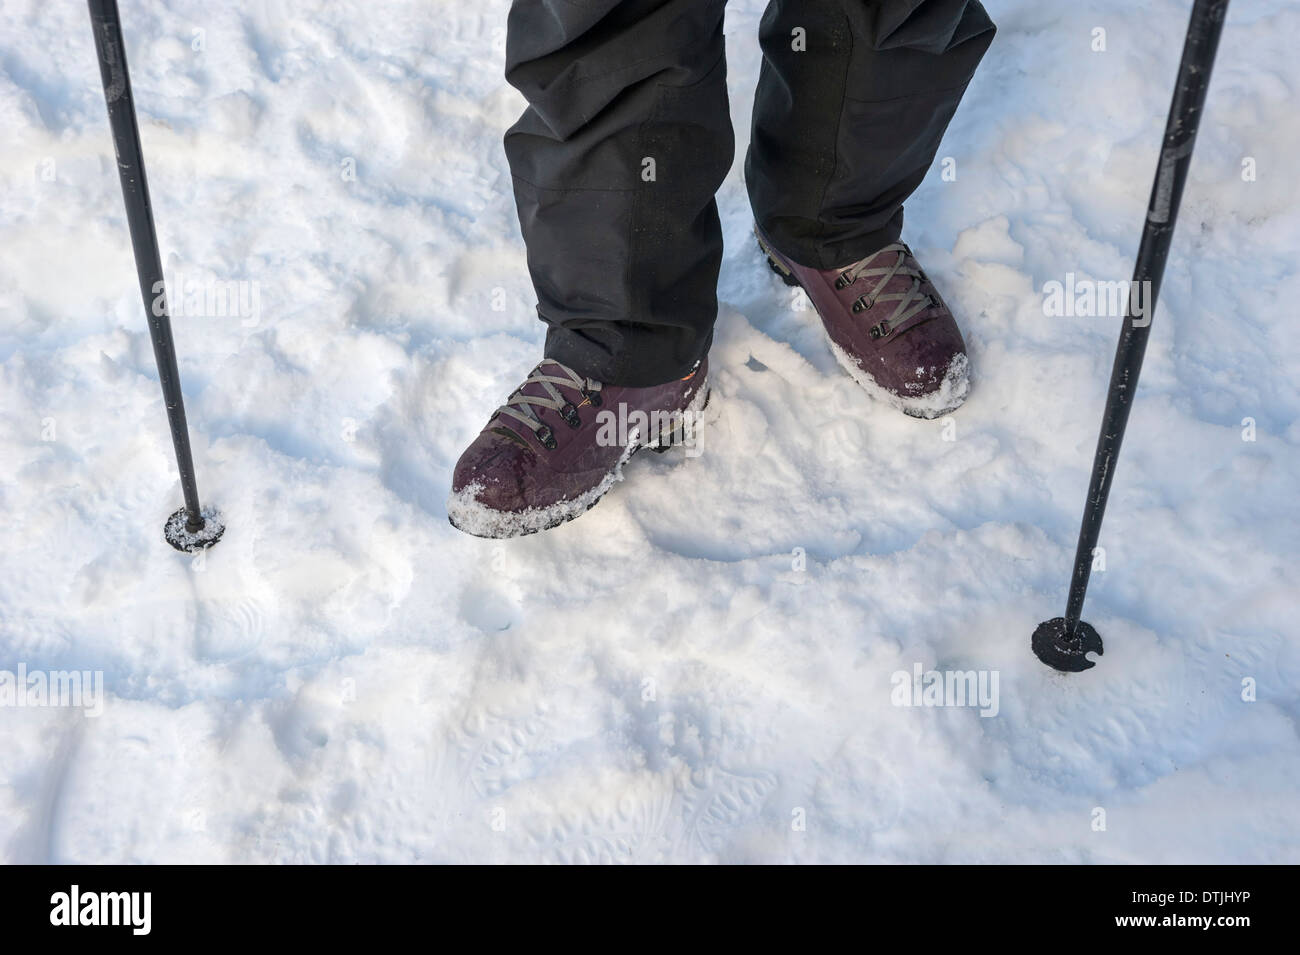 Snow hiking equipment - snow boots and trekking poles - Stock Image